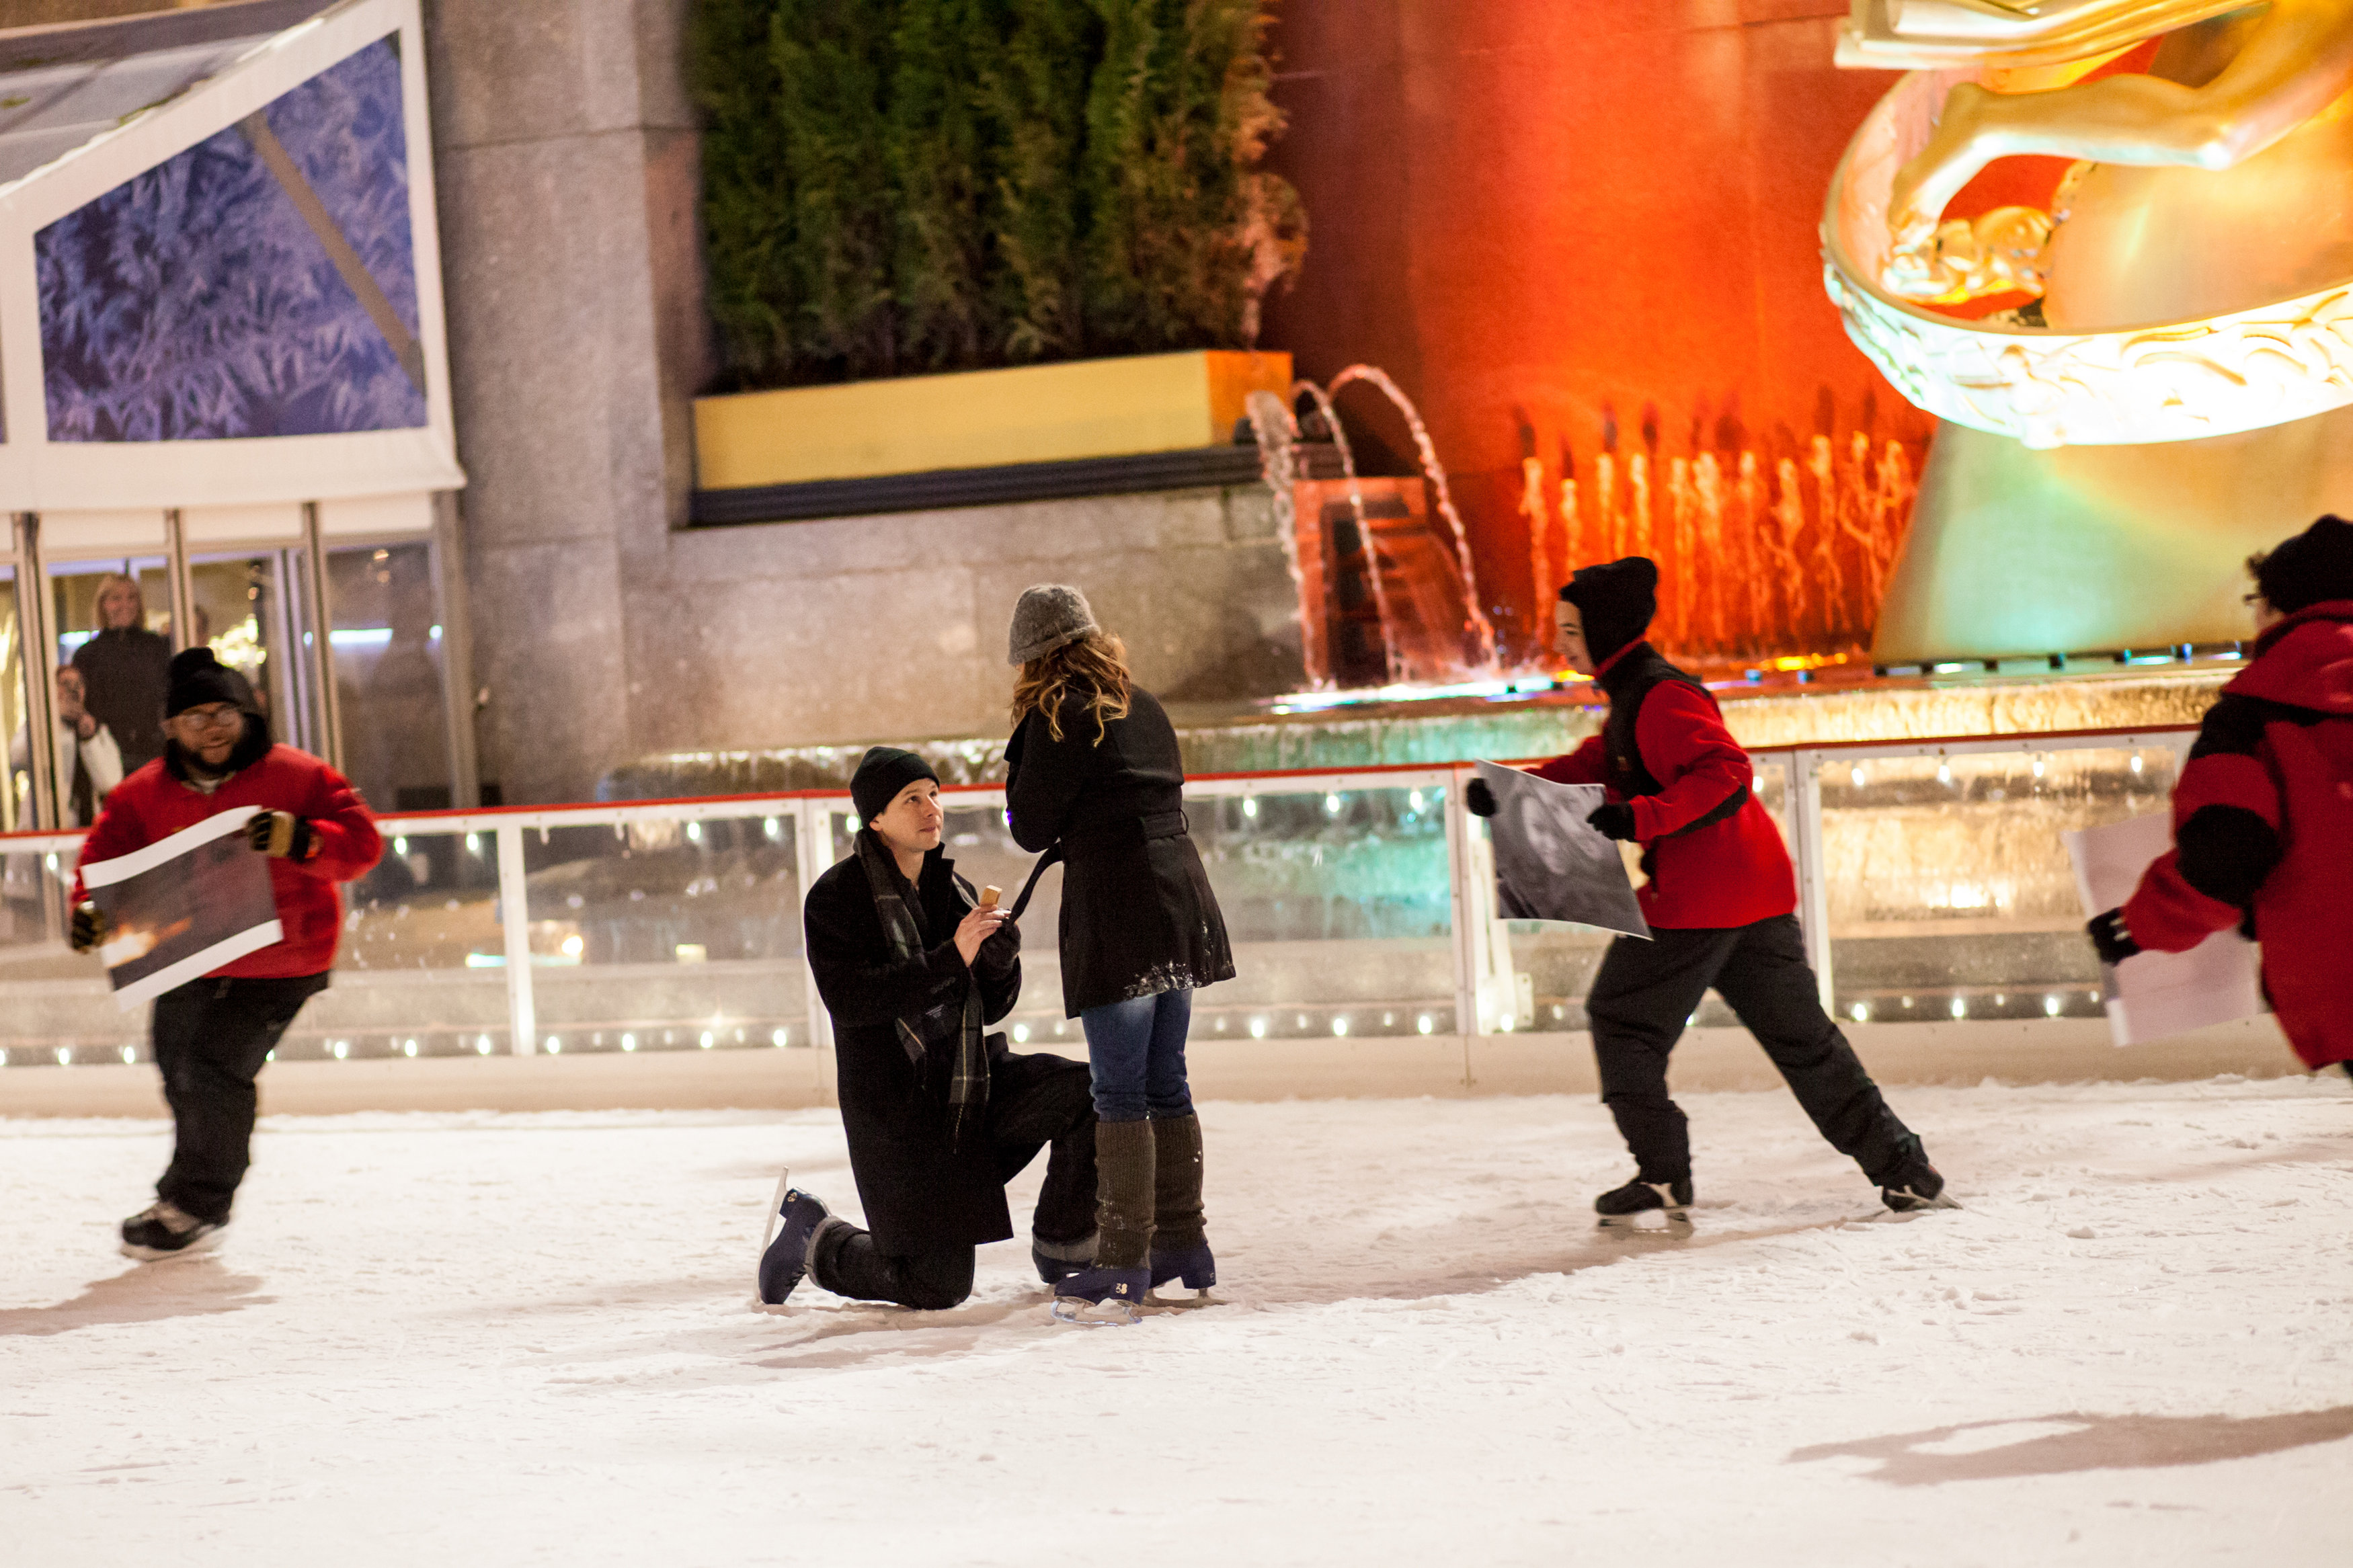 Image 5 of Christmas Day Proposal at Rockefeller Plaza